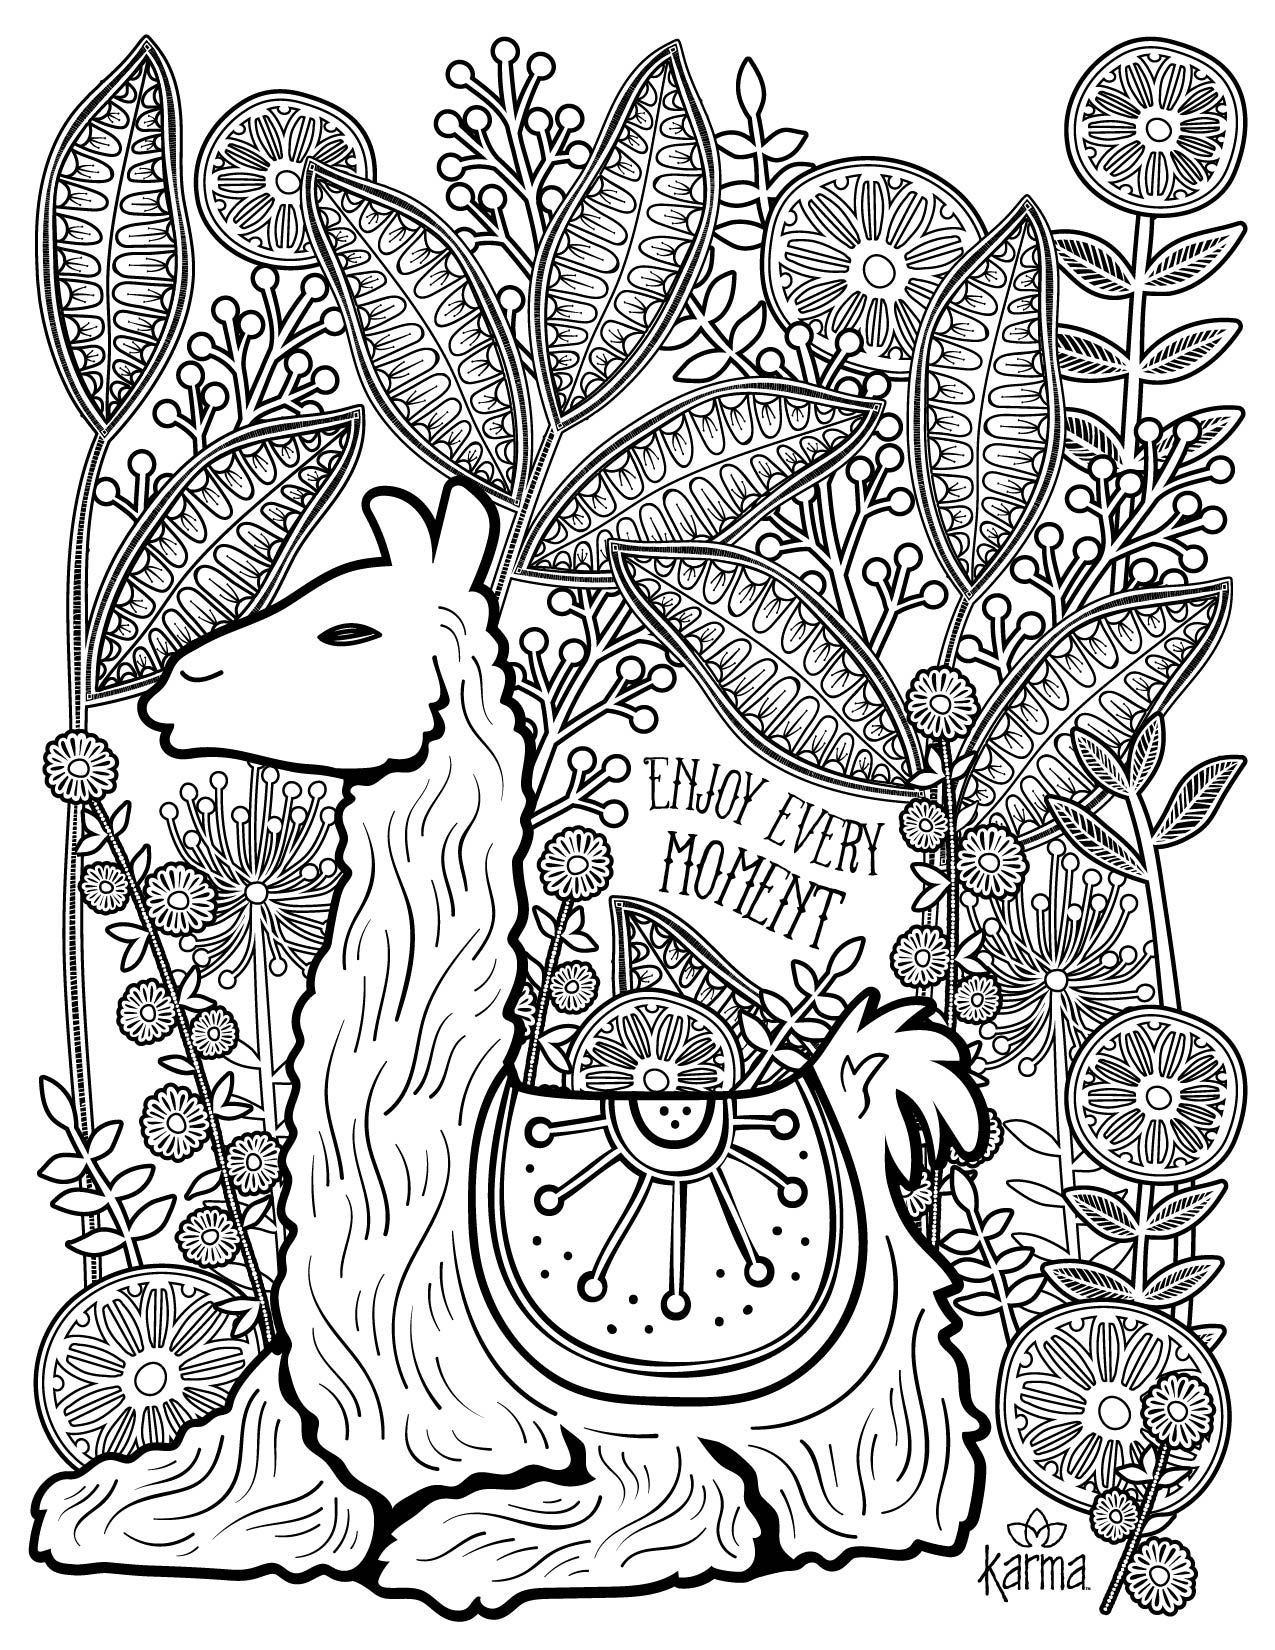 Printable Coloring Pages Skylark And Flowers Page Free Delectable Coloring Jurnalistiko Coloring Pages Kids Printable Coloring Pages Printable Coloring Pages